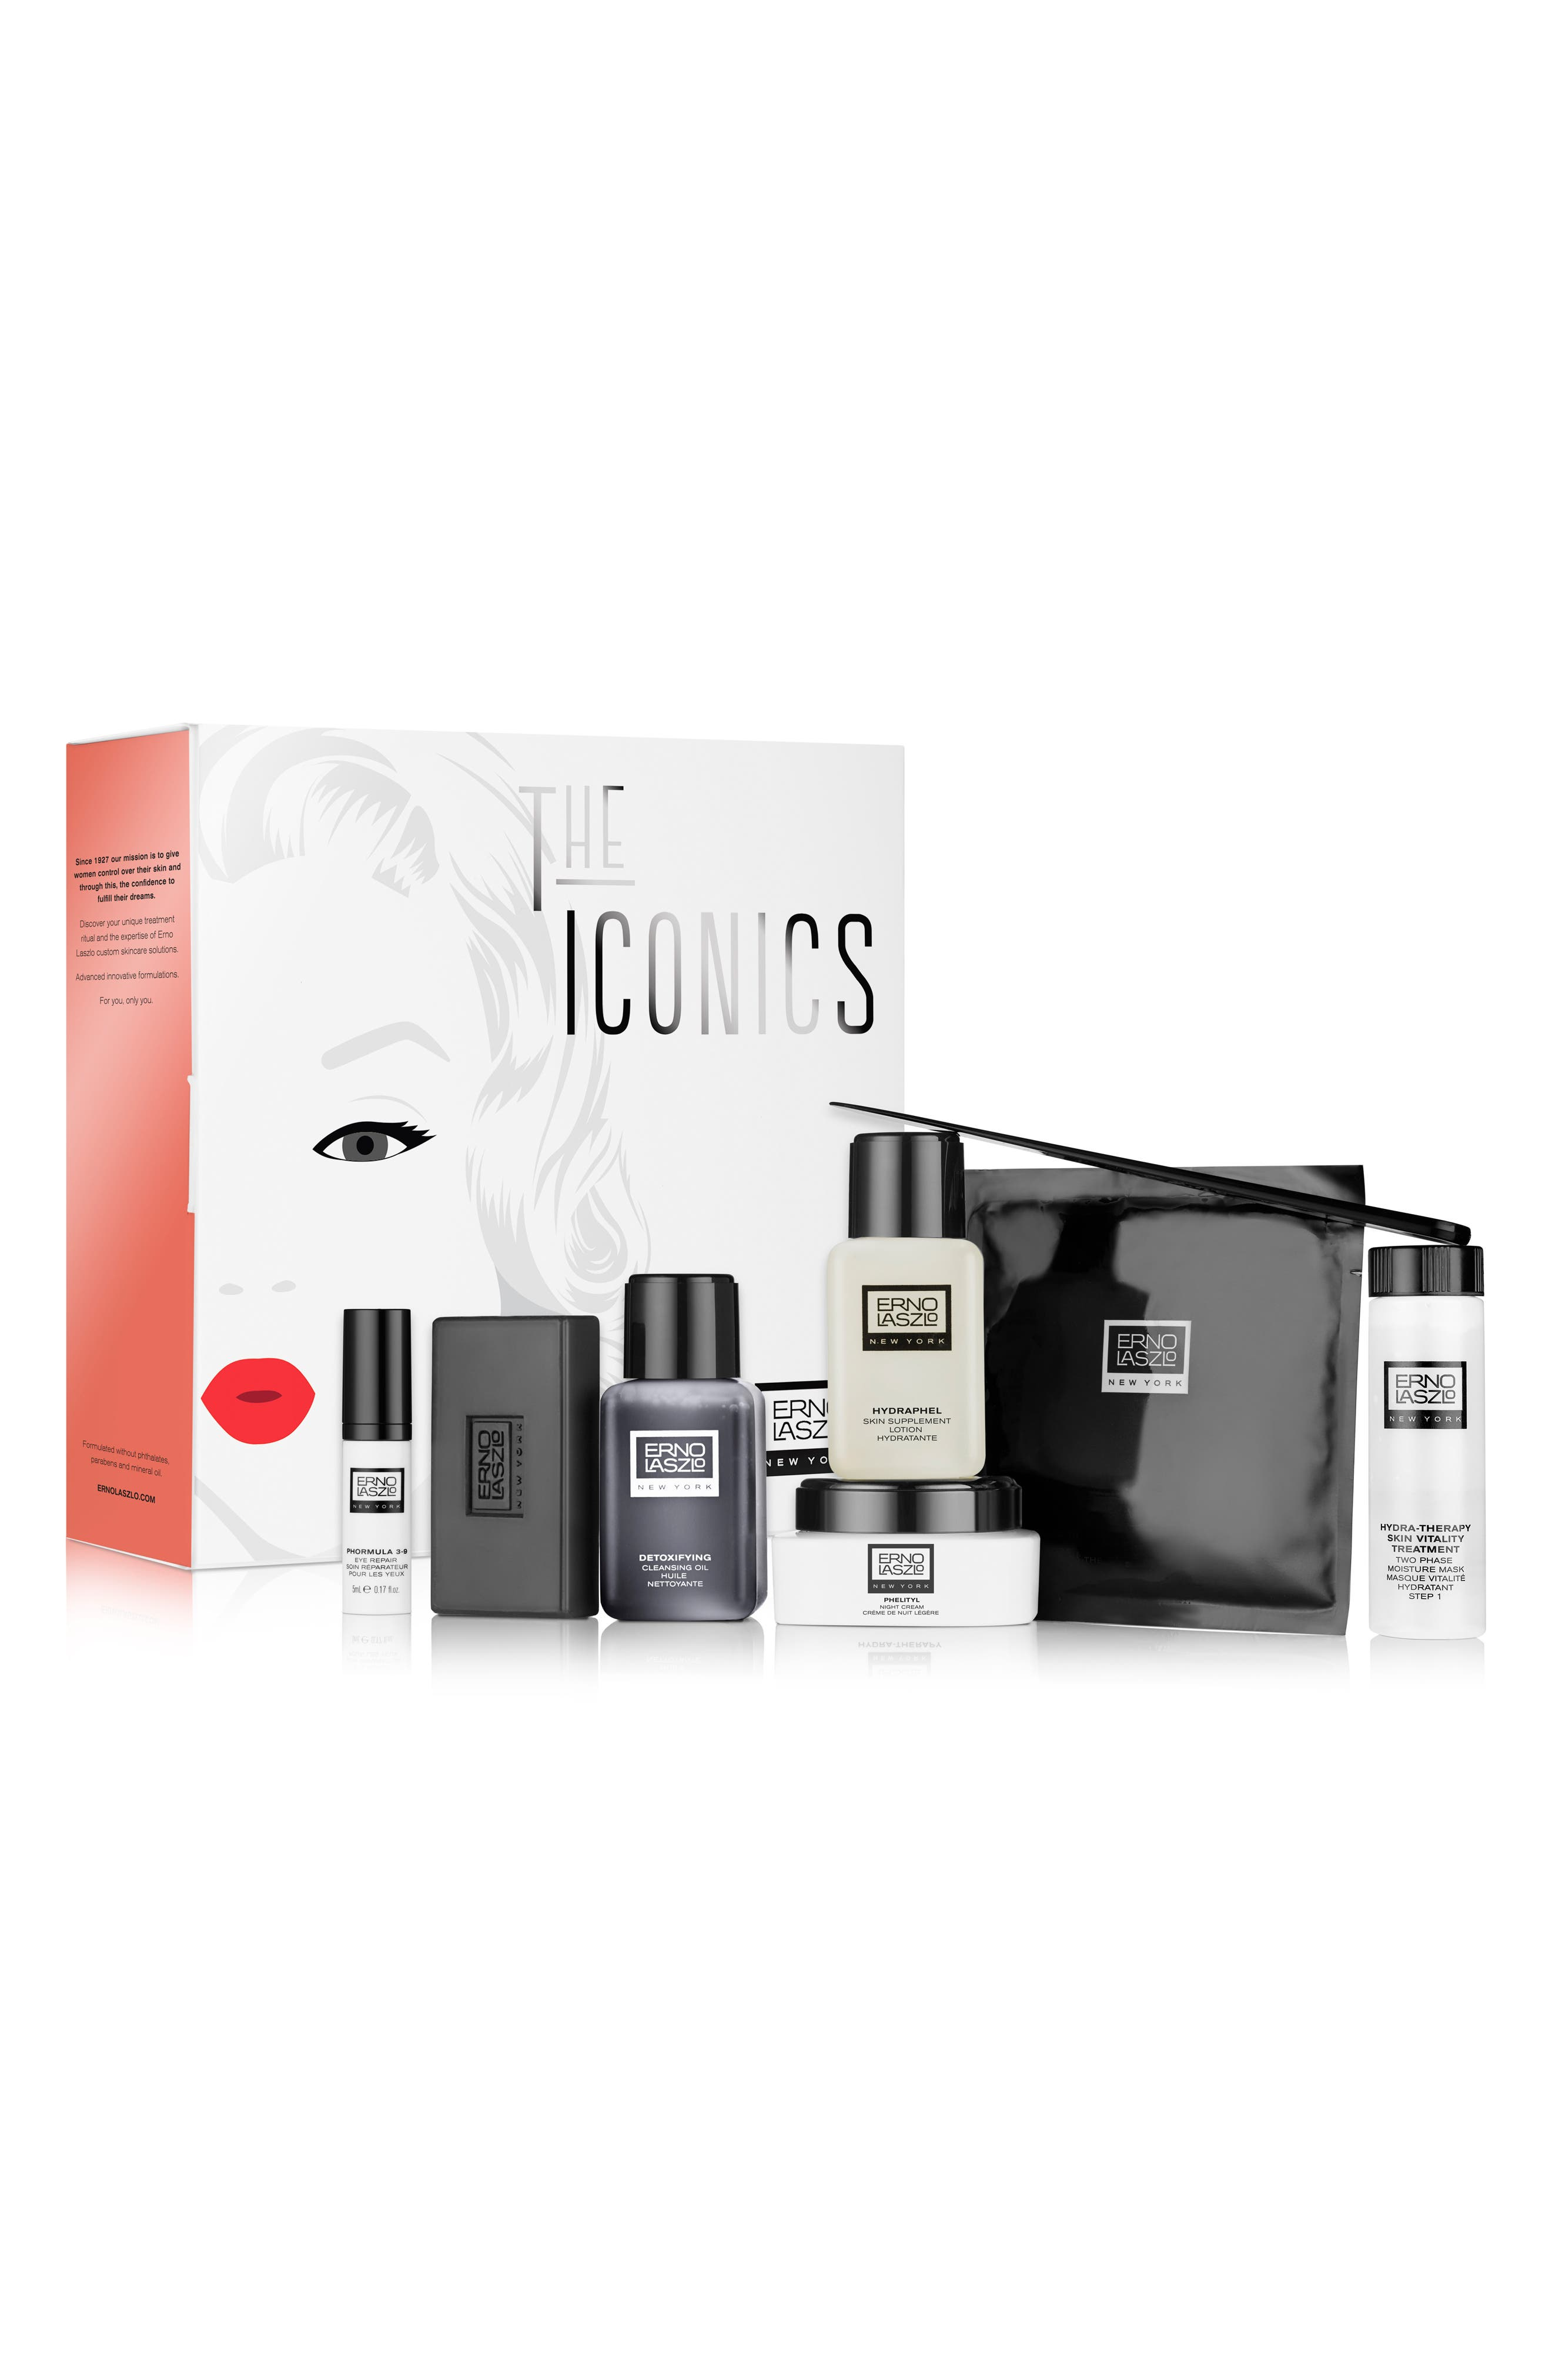 Erno Laszlo Beautiful Faces The Iconics Travel Set ($196 Value)